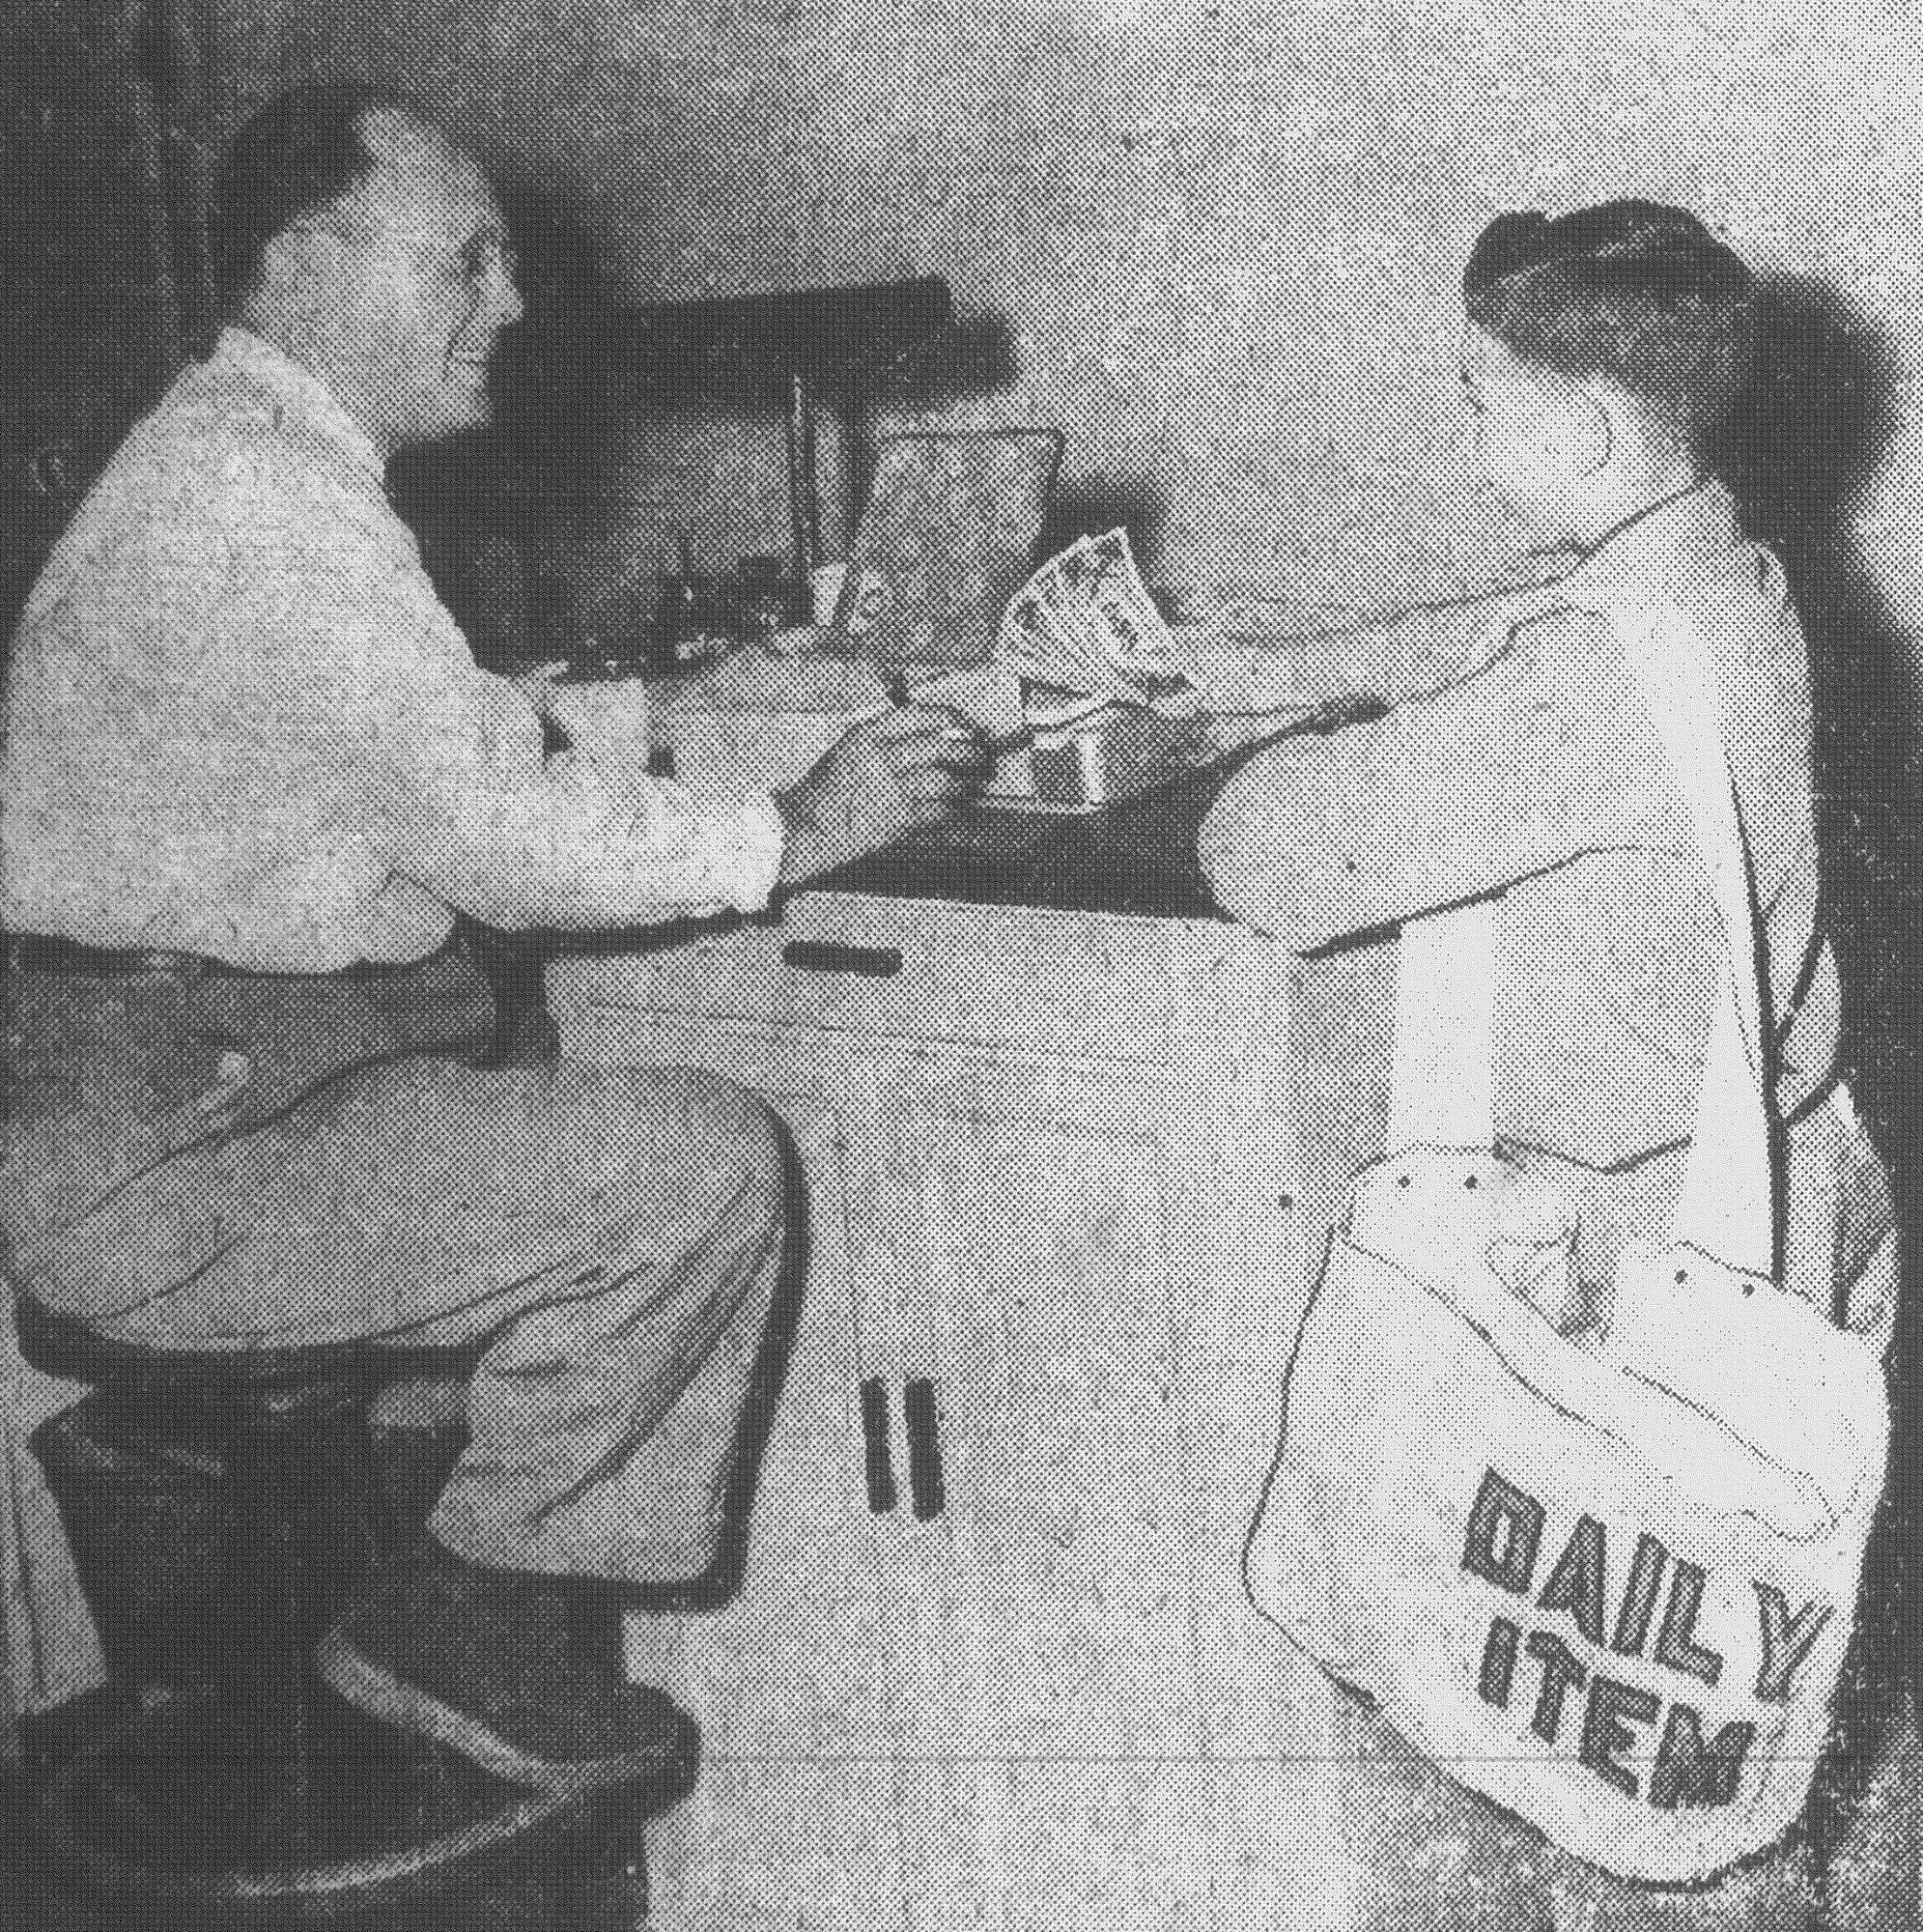 R. Mood Dollard and Jimmy Bateman are seen as they go through a regular weekly procedure at the Daily item office as National Newspaper Week gets underway in 1952. Mr. Dollard, circulation manager for the paper beginning in 1922, checked Bateman's route collection money.